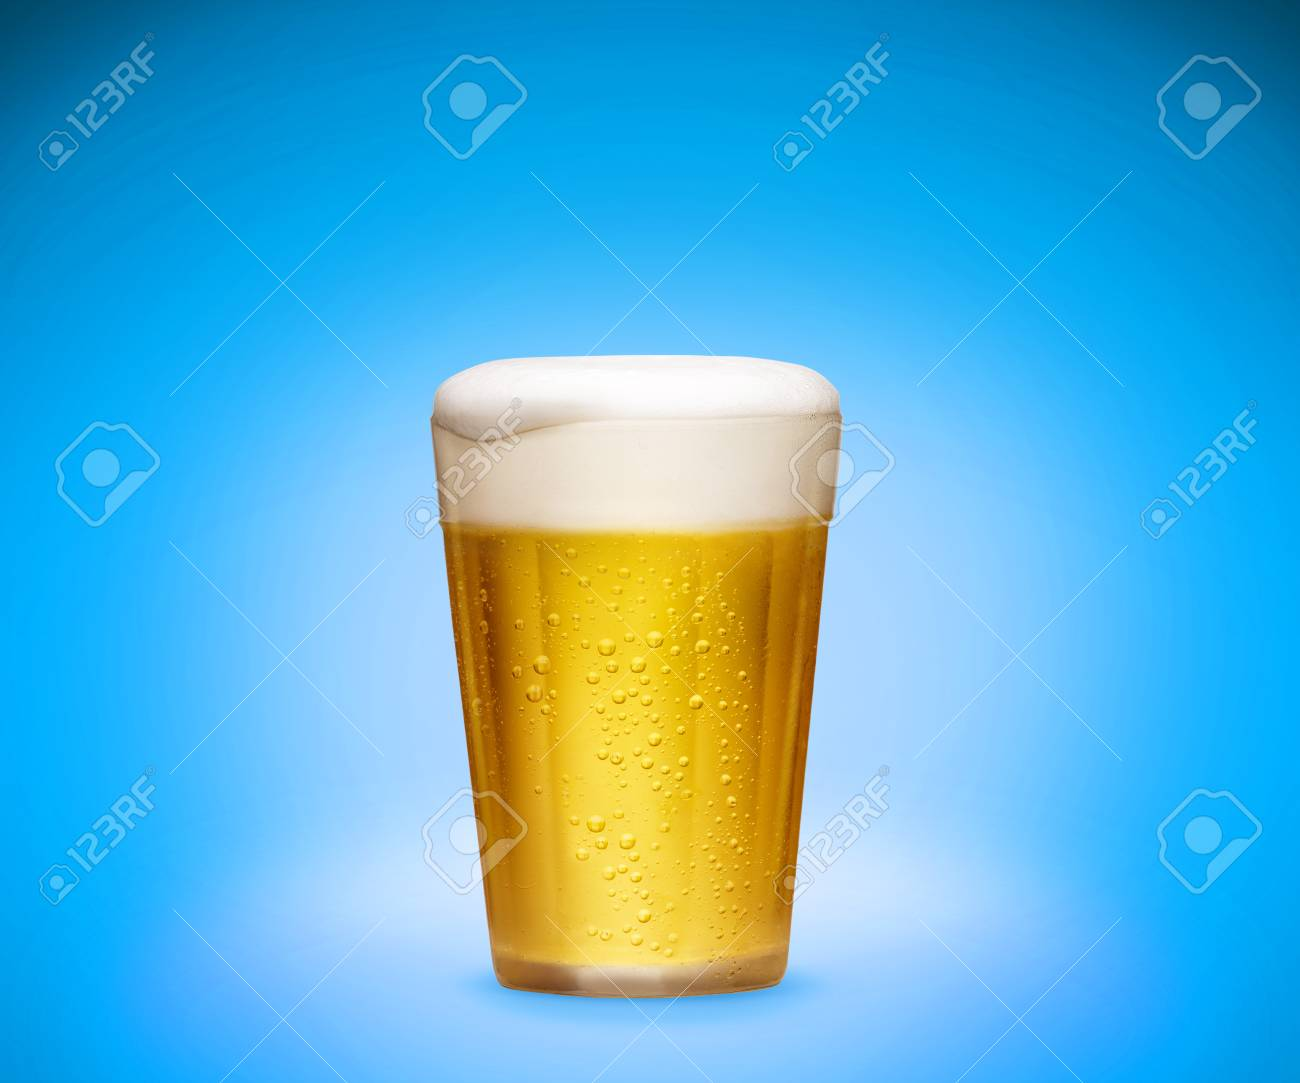 Glass of cold beer - 49967116